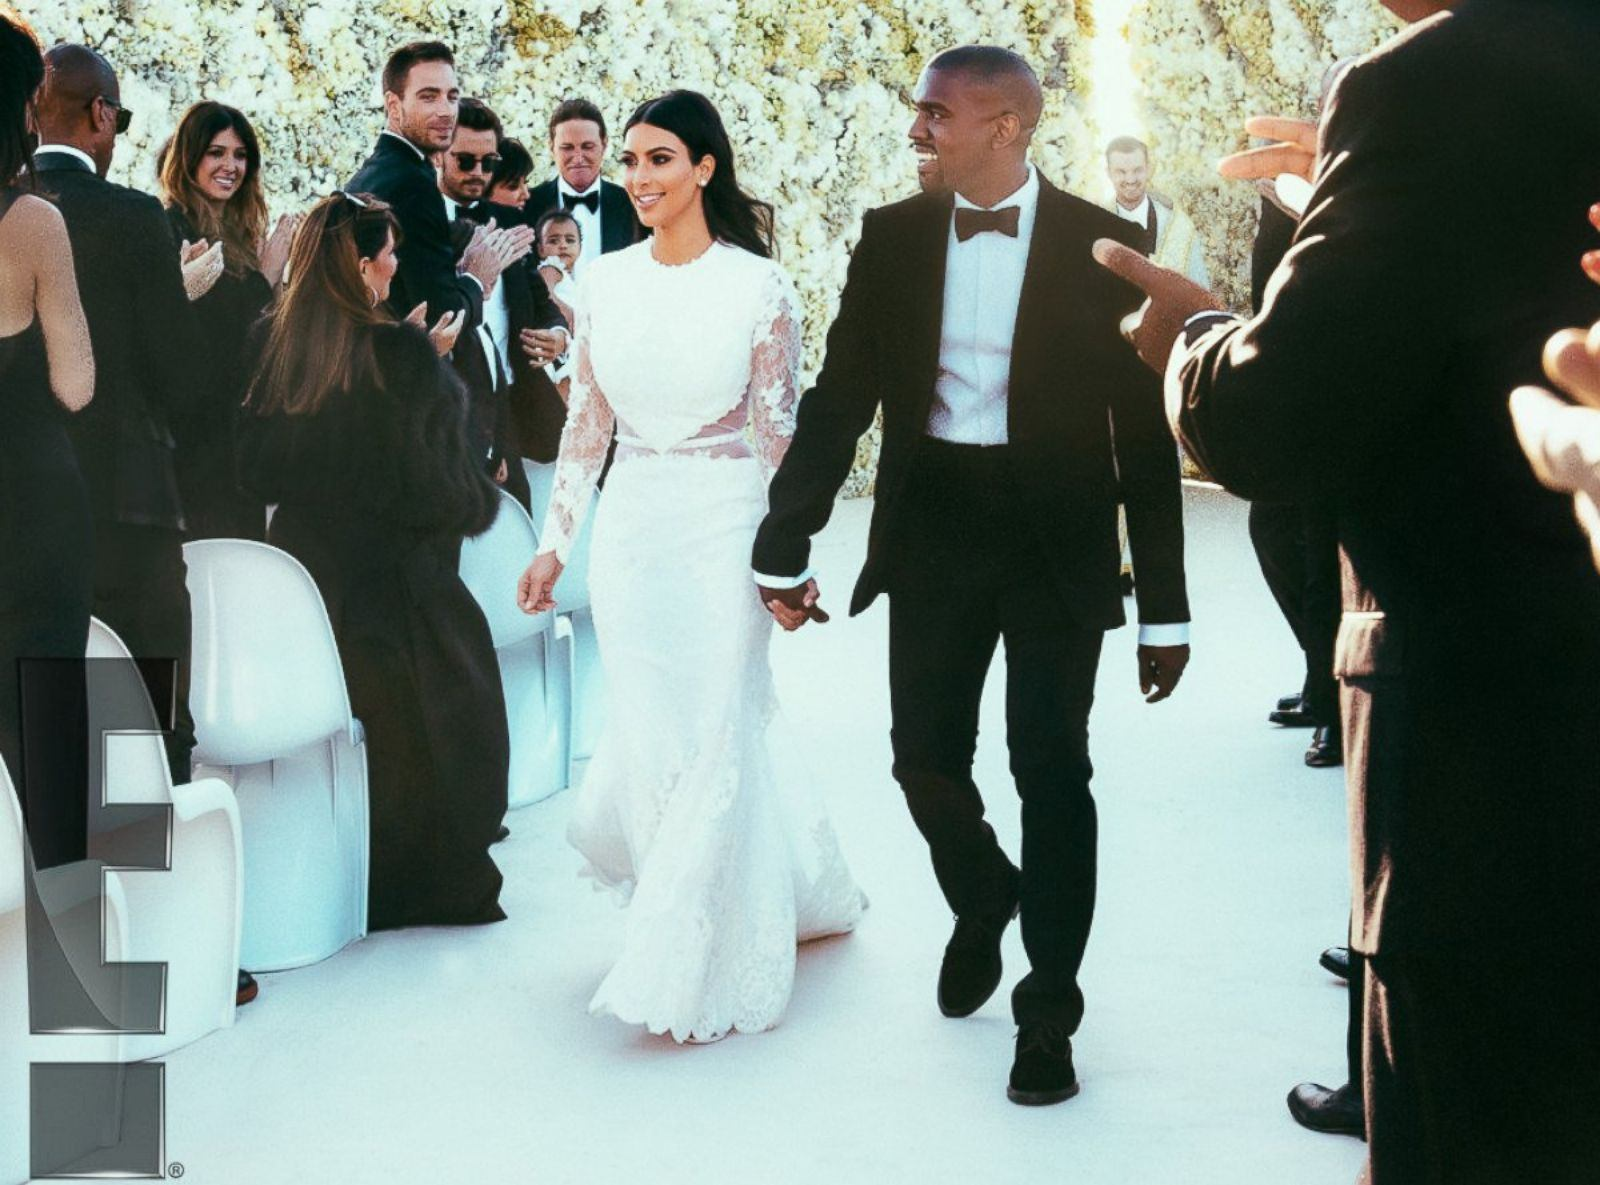 Kim Kardashian and Kanye West: A Look at One of the Most Influential Marriages and How it Is Ending